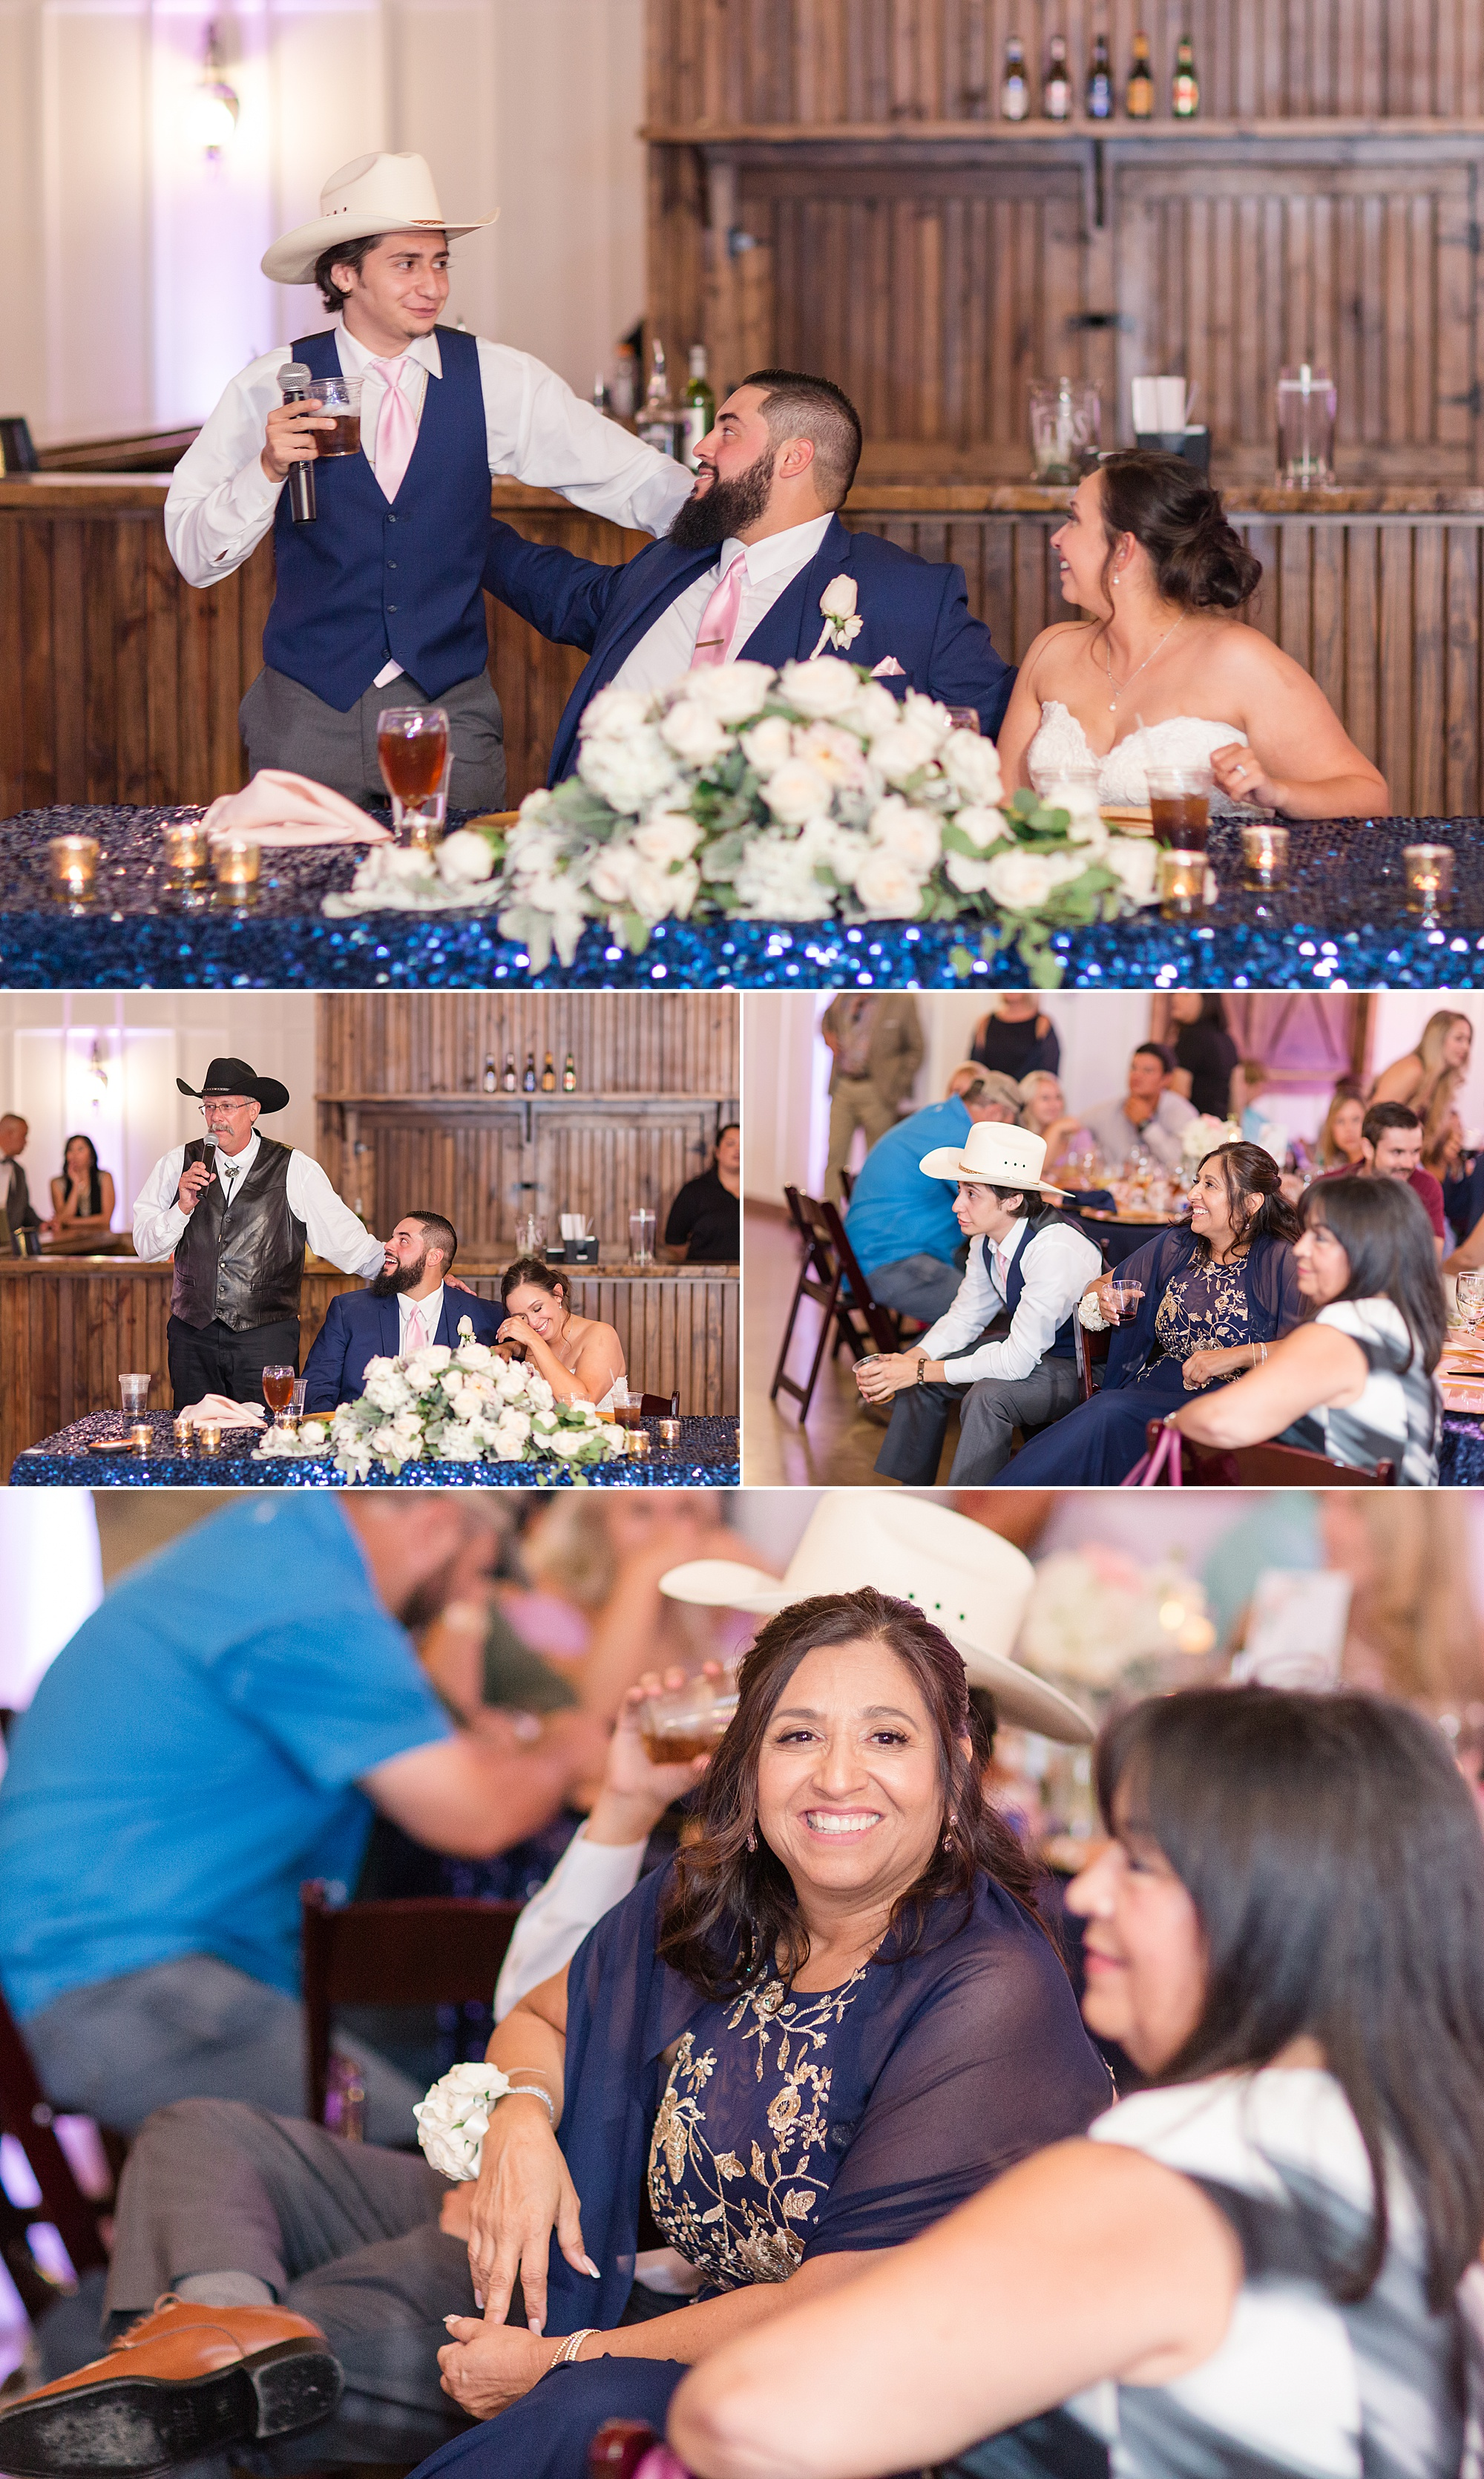 Wedding-Photographer-Bulverde-Texas-Western-Sky-Event-Venue-Carly-Barton-Photography_0073.jpg